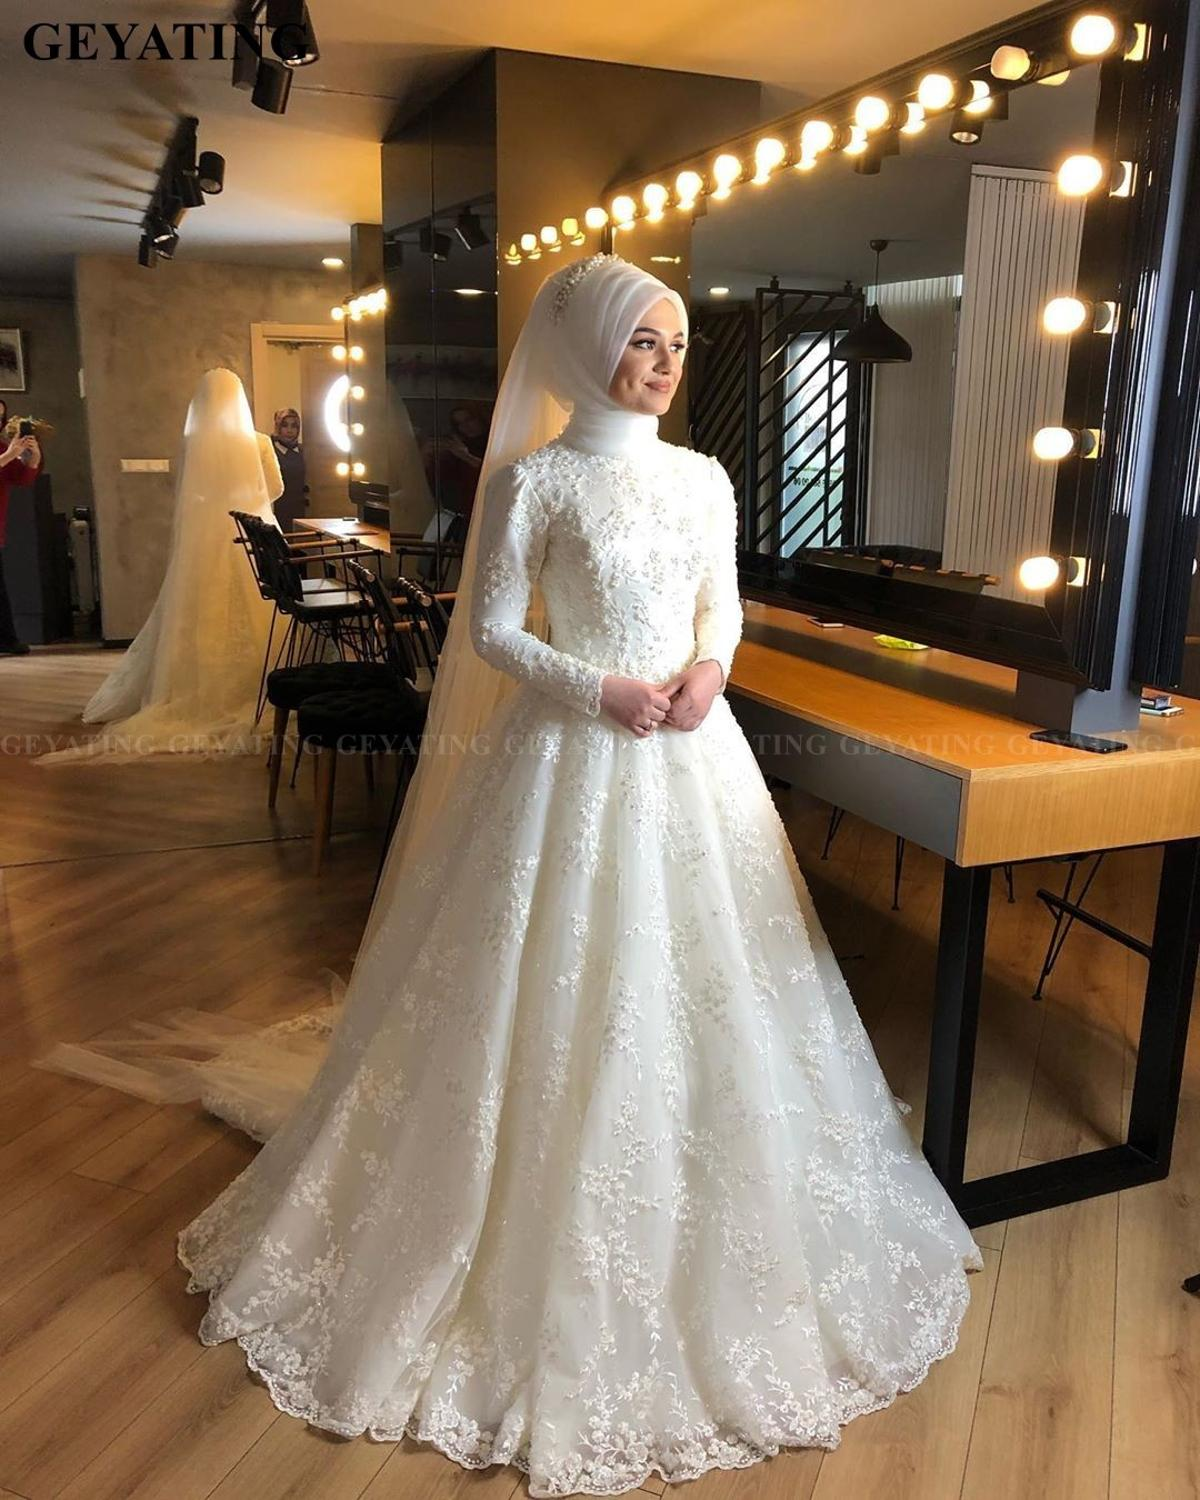 Image 3 - 2020 Elegant Off White Islamic Muslim Wedding Dress with Hijab Long Sleeves High Neck Pearls Lace Arabic Bridal Gowns in Dubai-in Wedding Dresses from Weddings & Events